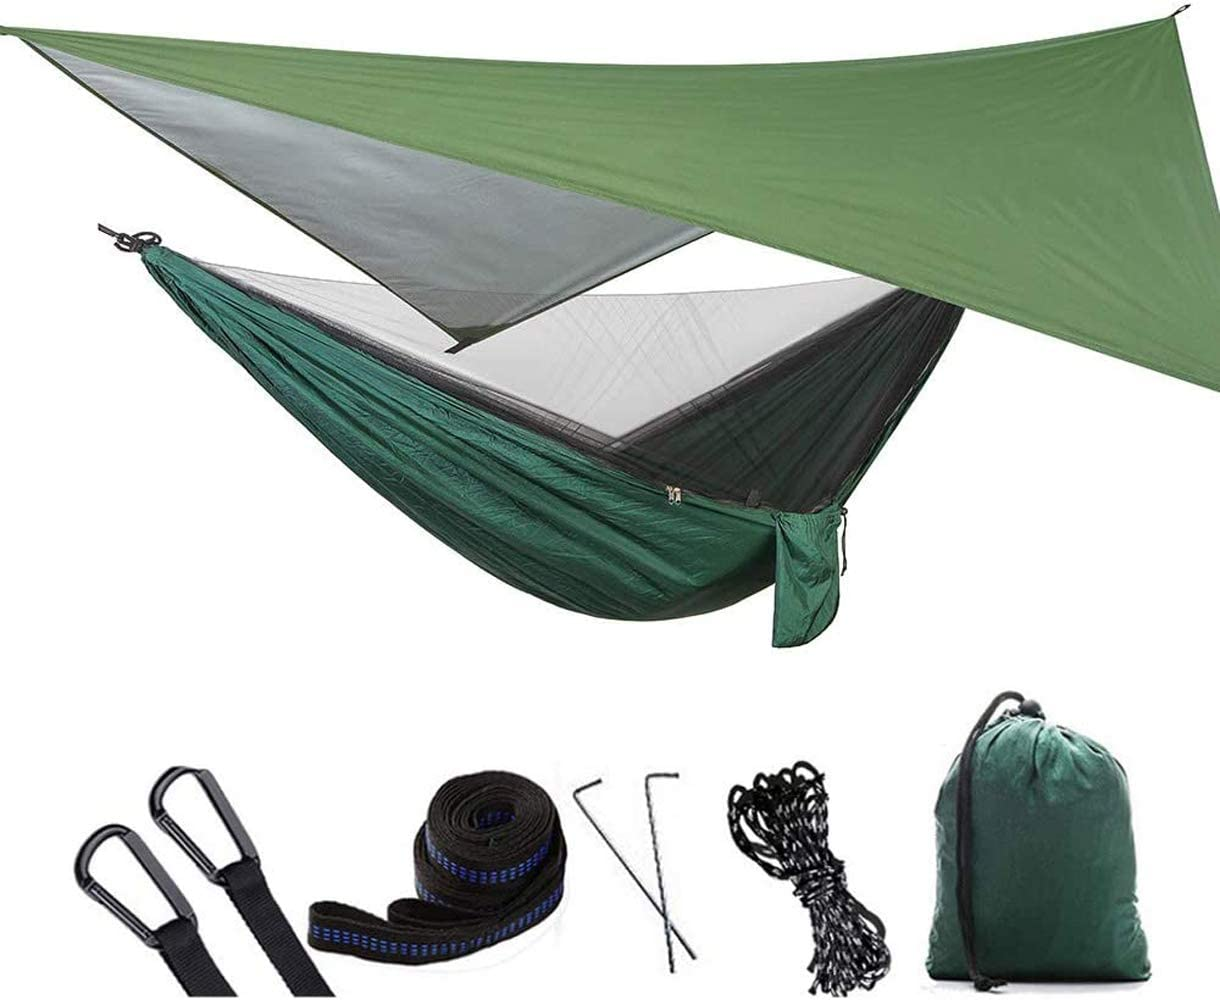 💥Spring Hot Sale 50% OFF💥Multifunctional Hammock Tent &  Buy 2 Get Extra 10% OFF